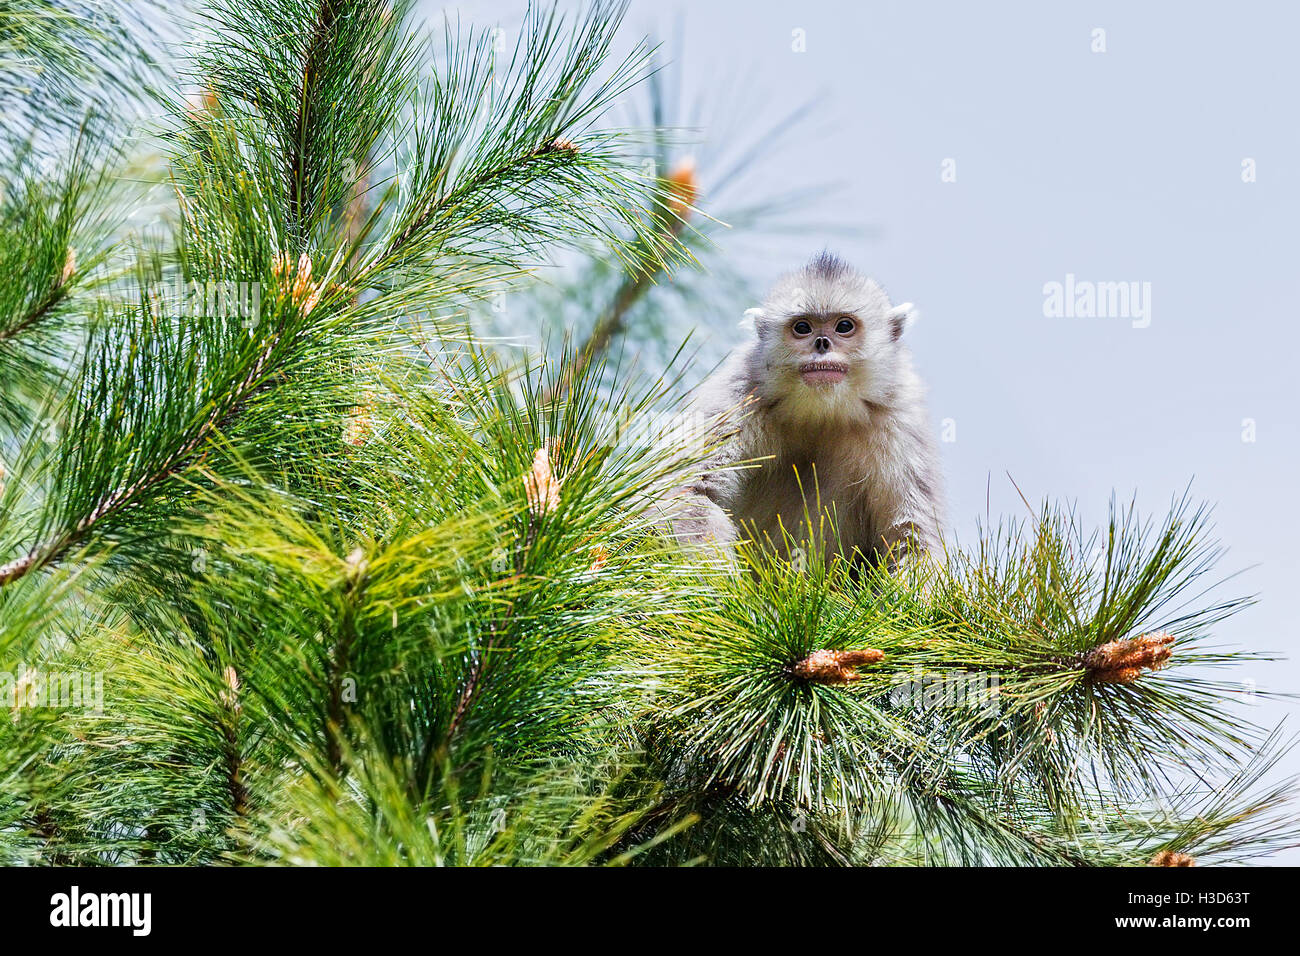 A young Black snub-nosed monkey sitting on the branches of a conifer tree in a Himalayan forest, Yunnan, China - Stock Image